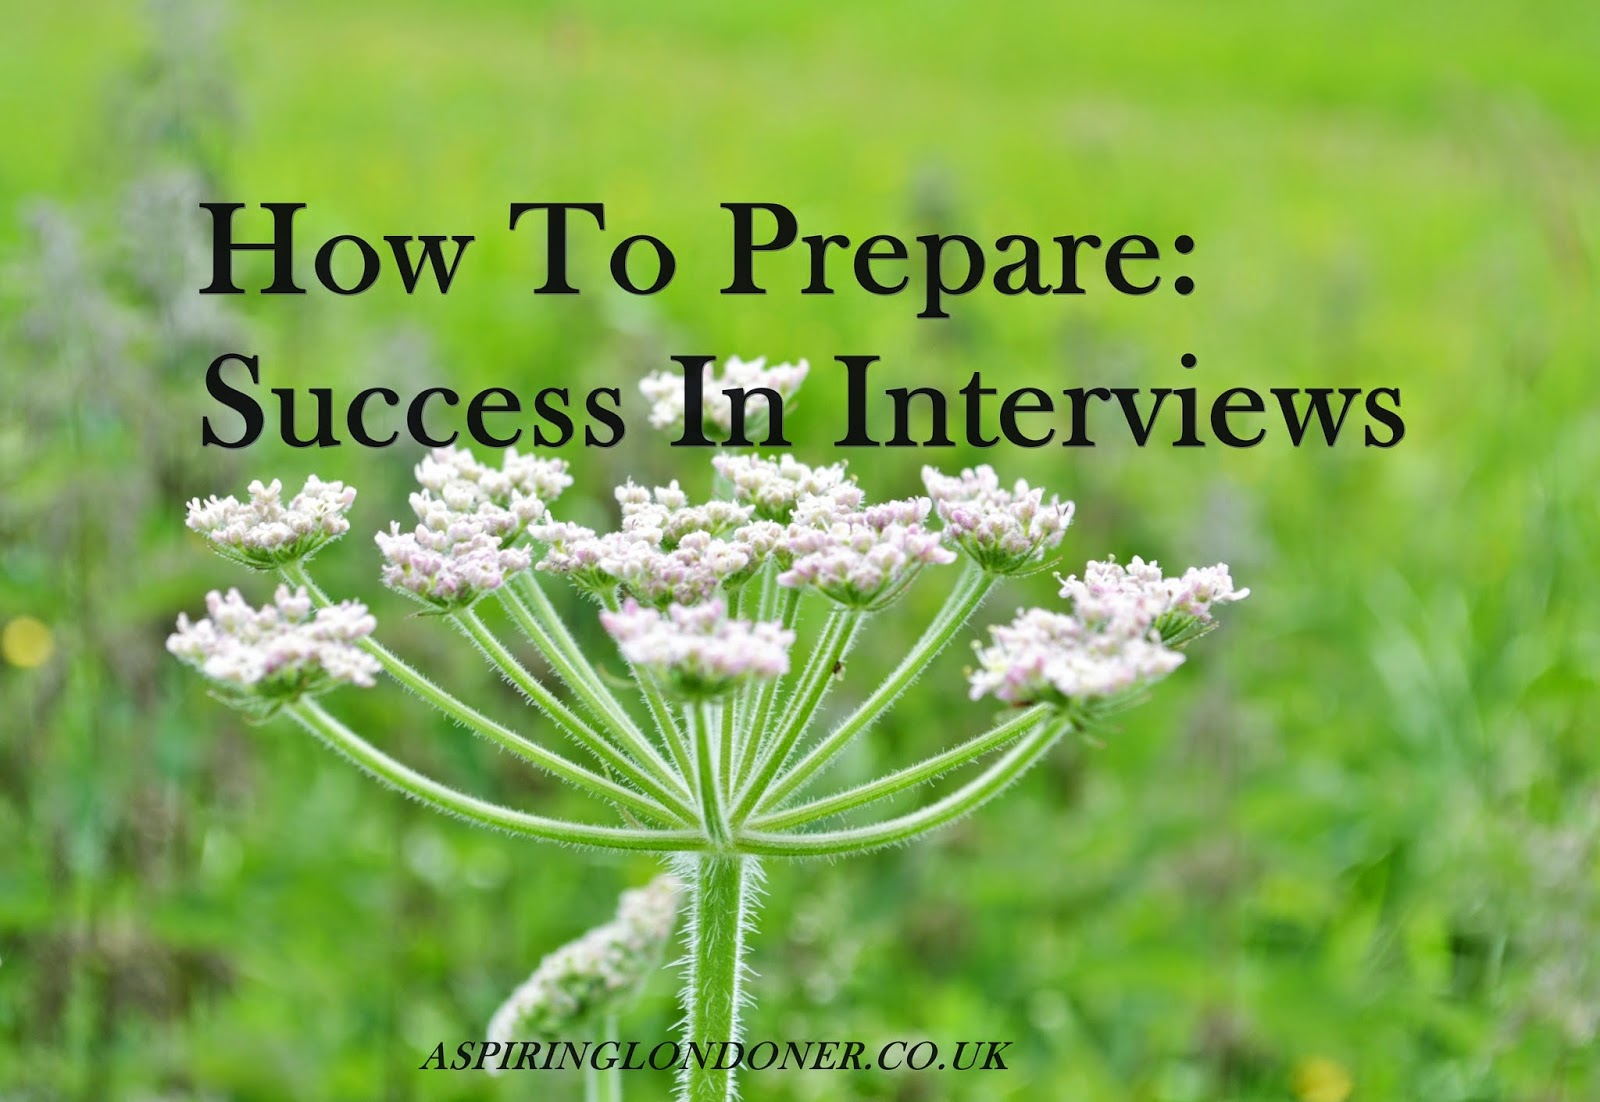 Prepare for a successful interview - Aspiring Londoner